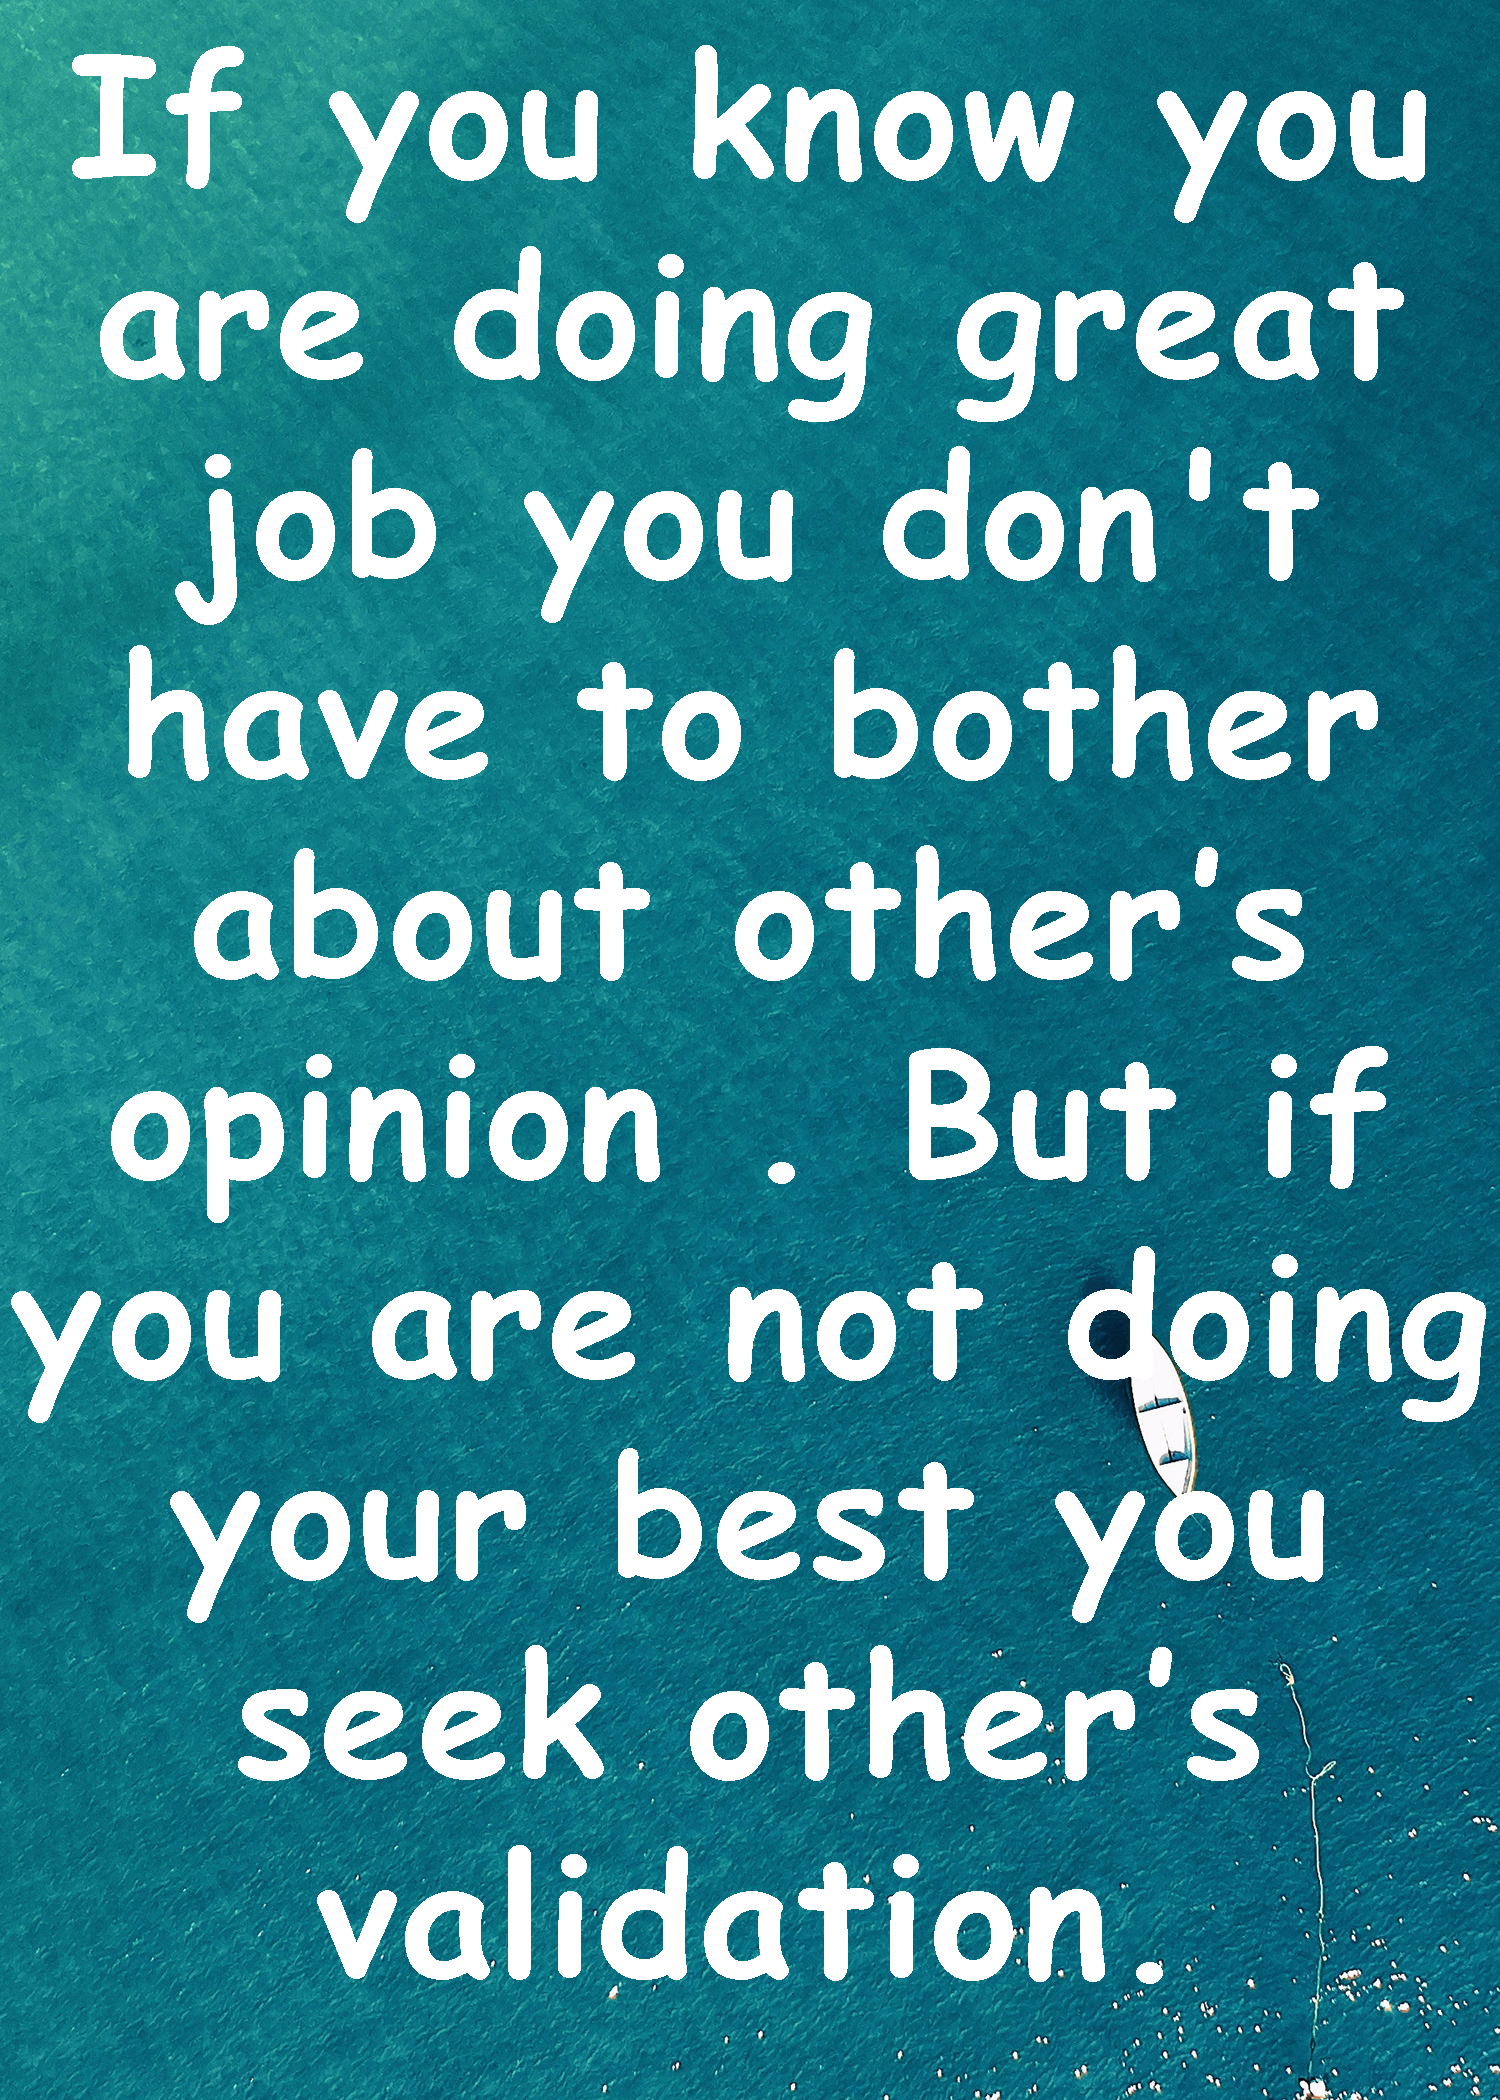 If you know you are doing great job you don't have to bother about other's opinion . But if you are not doing your best you seek other's validation.[image]